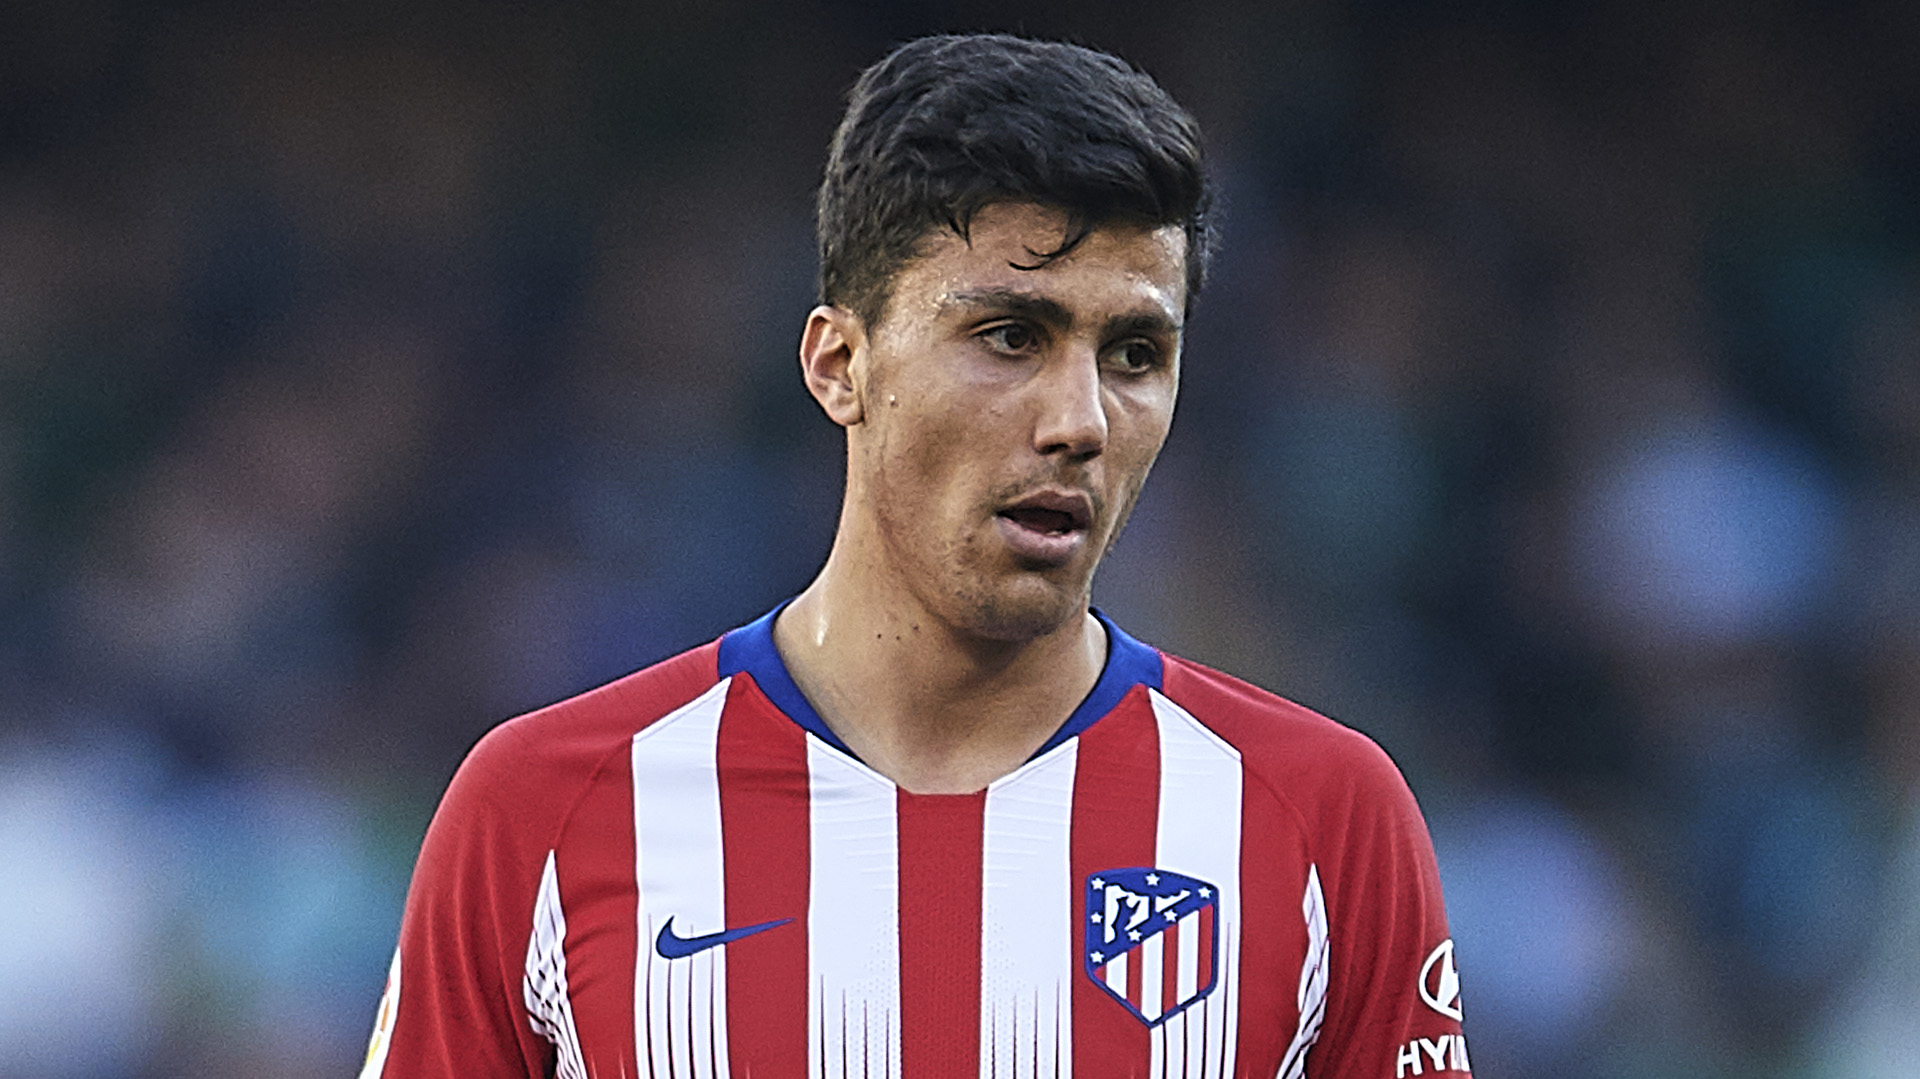 Atletico Madrid confirm that Manchester City have paid Rodri's release clause